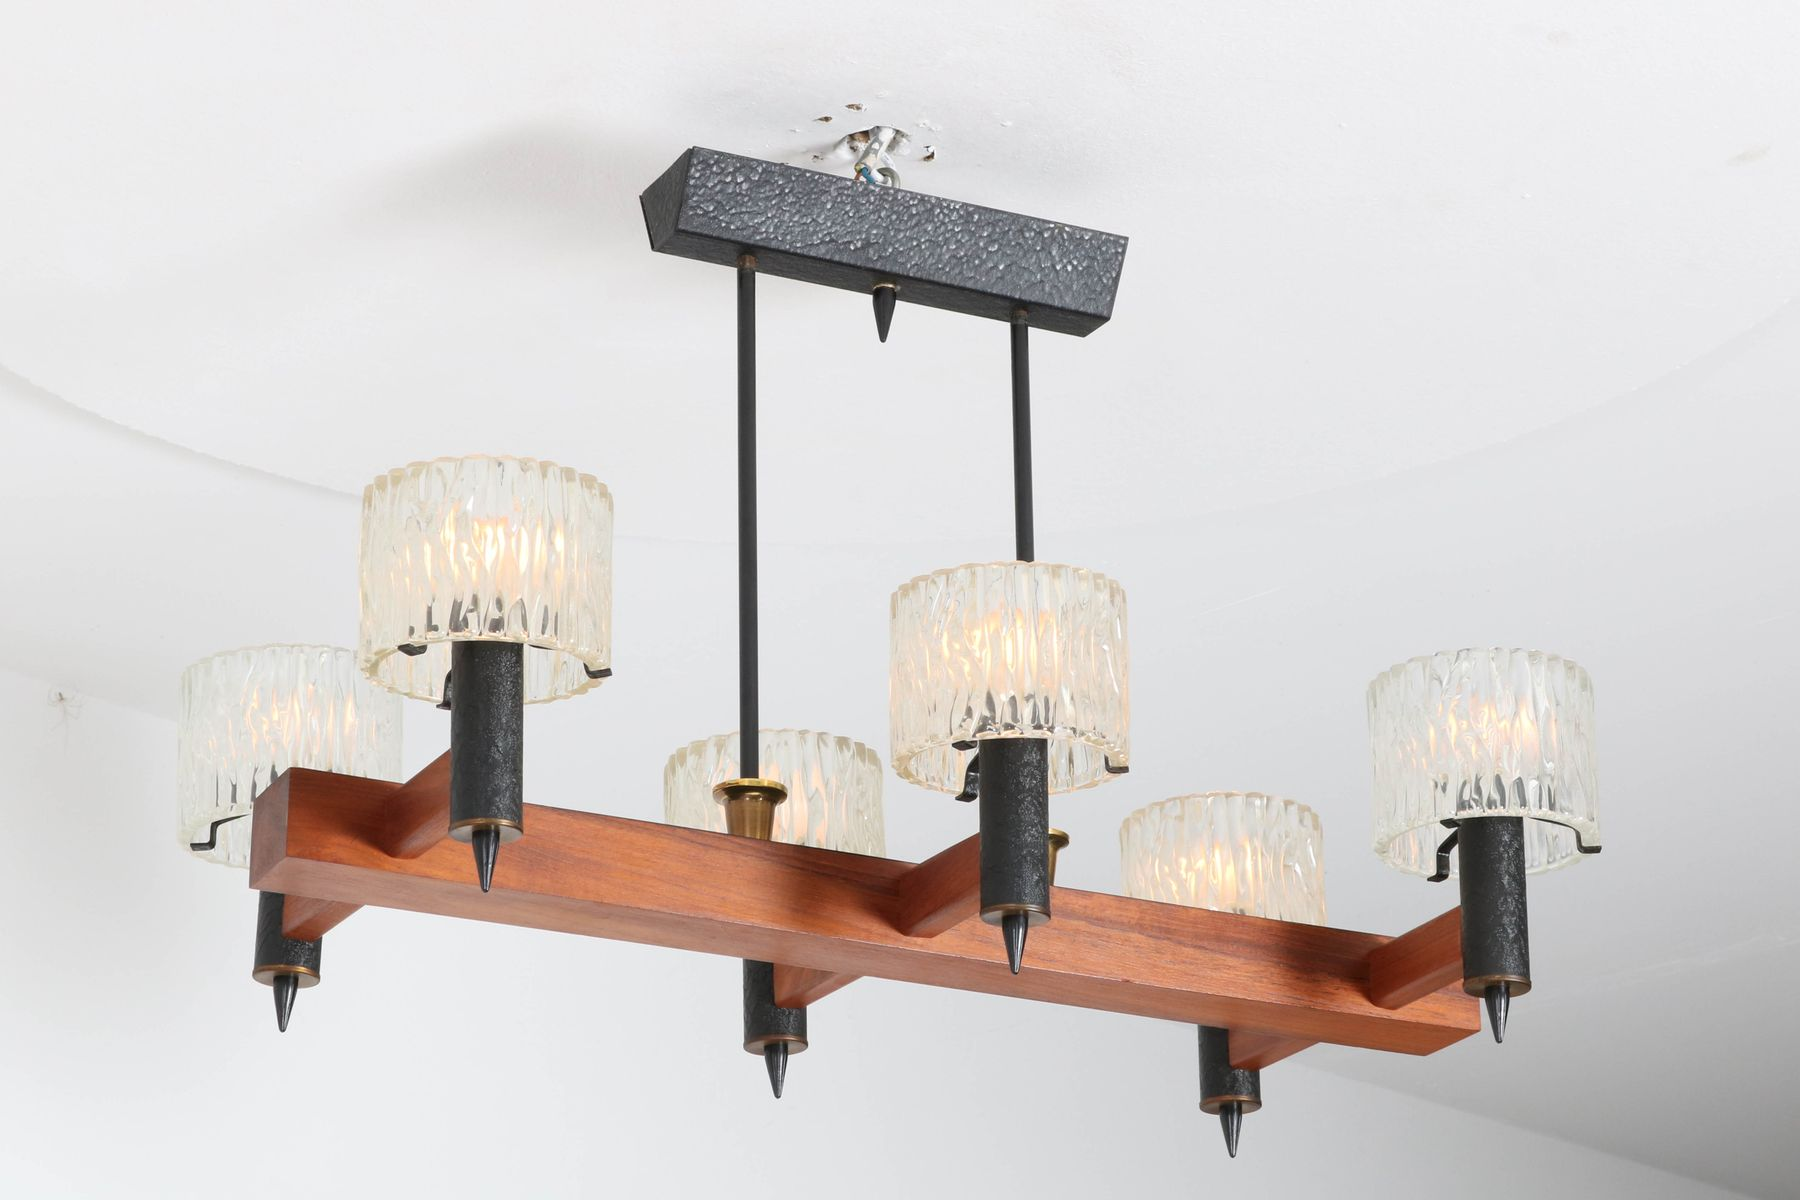 Mid century modern chandelier by carl fagerlund for orrefors sweden mid century modern chandelier by carl fagerlund for orrefors sweden 1950s aloadofball Choice Image